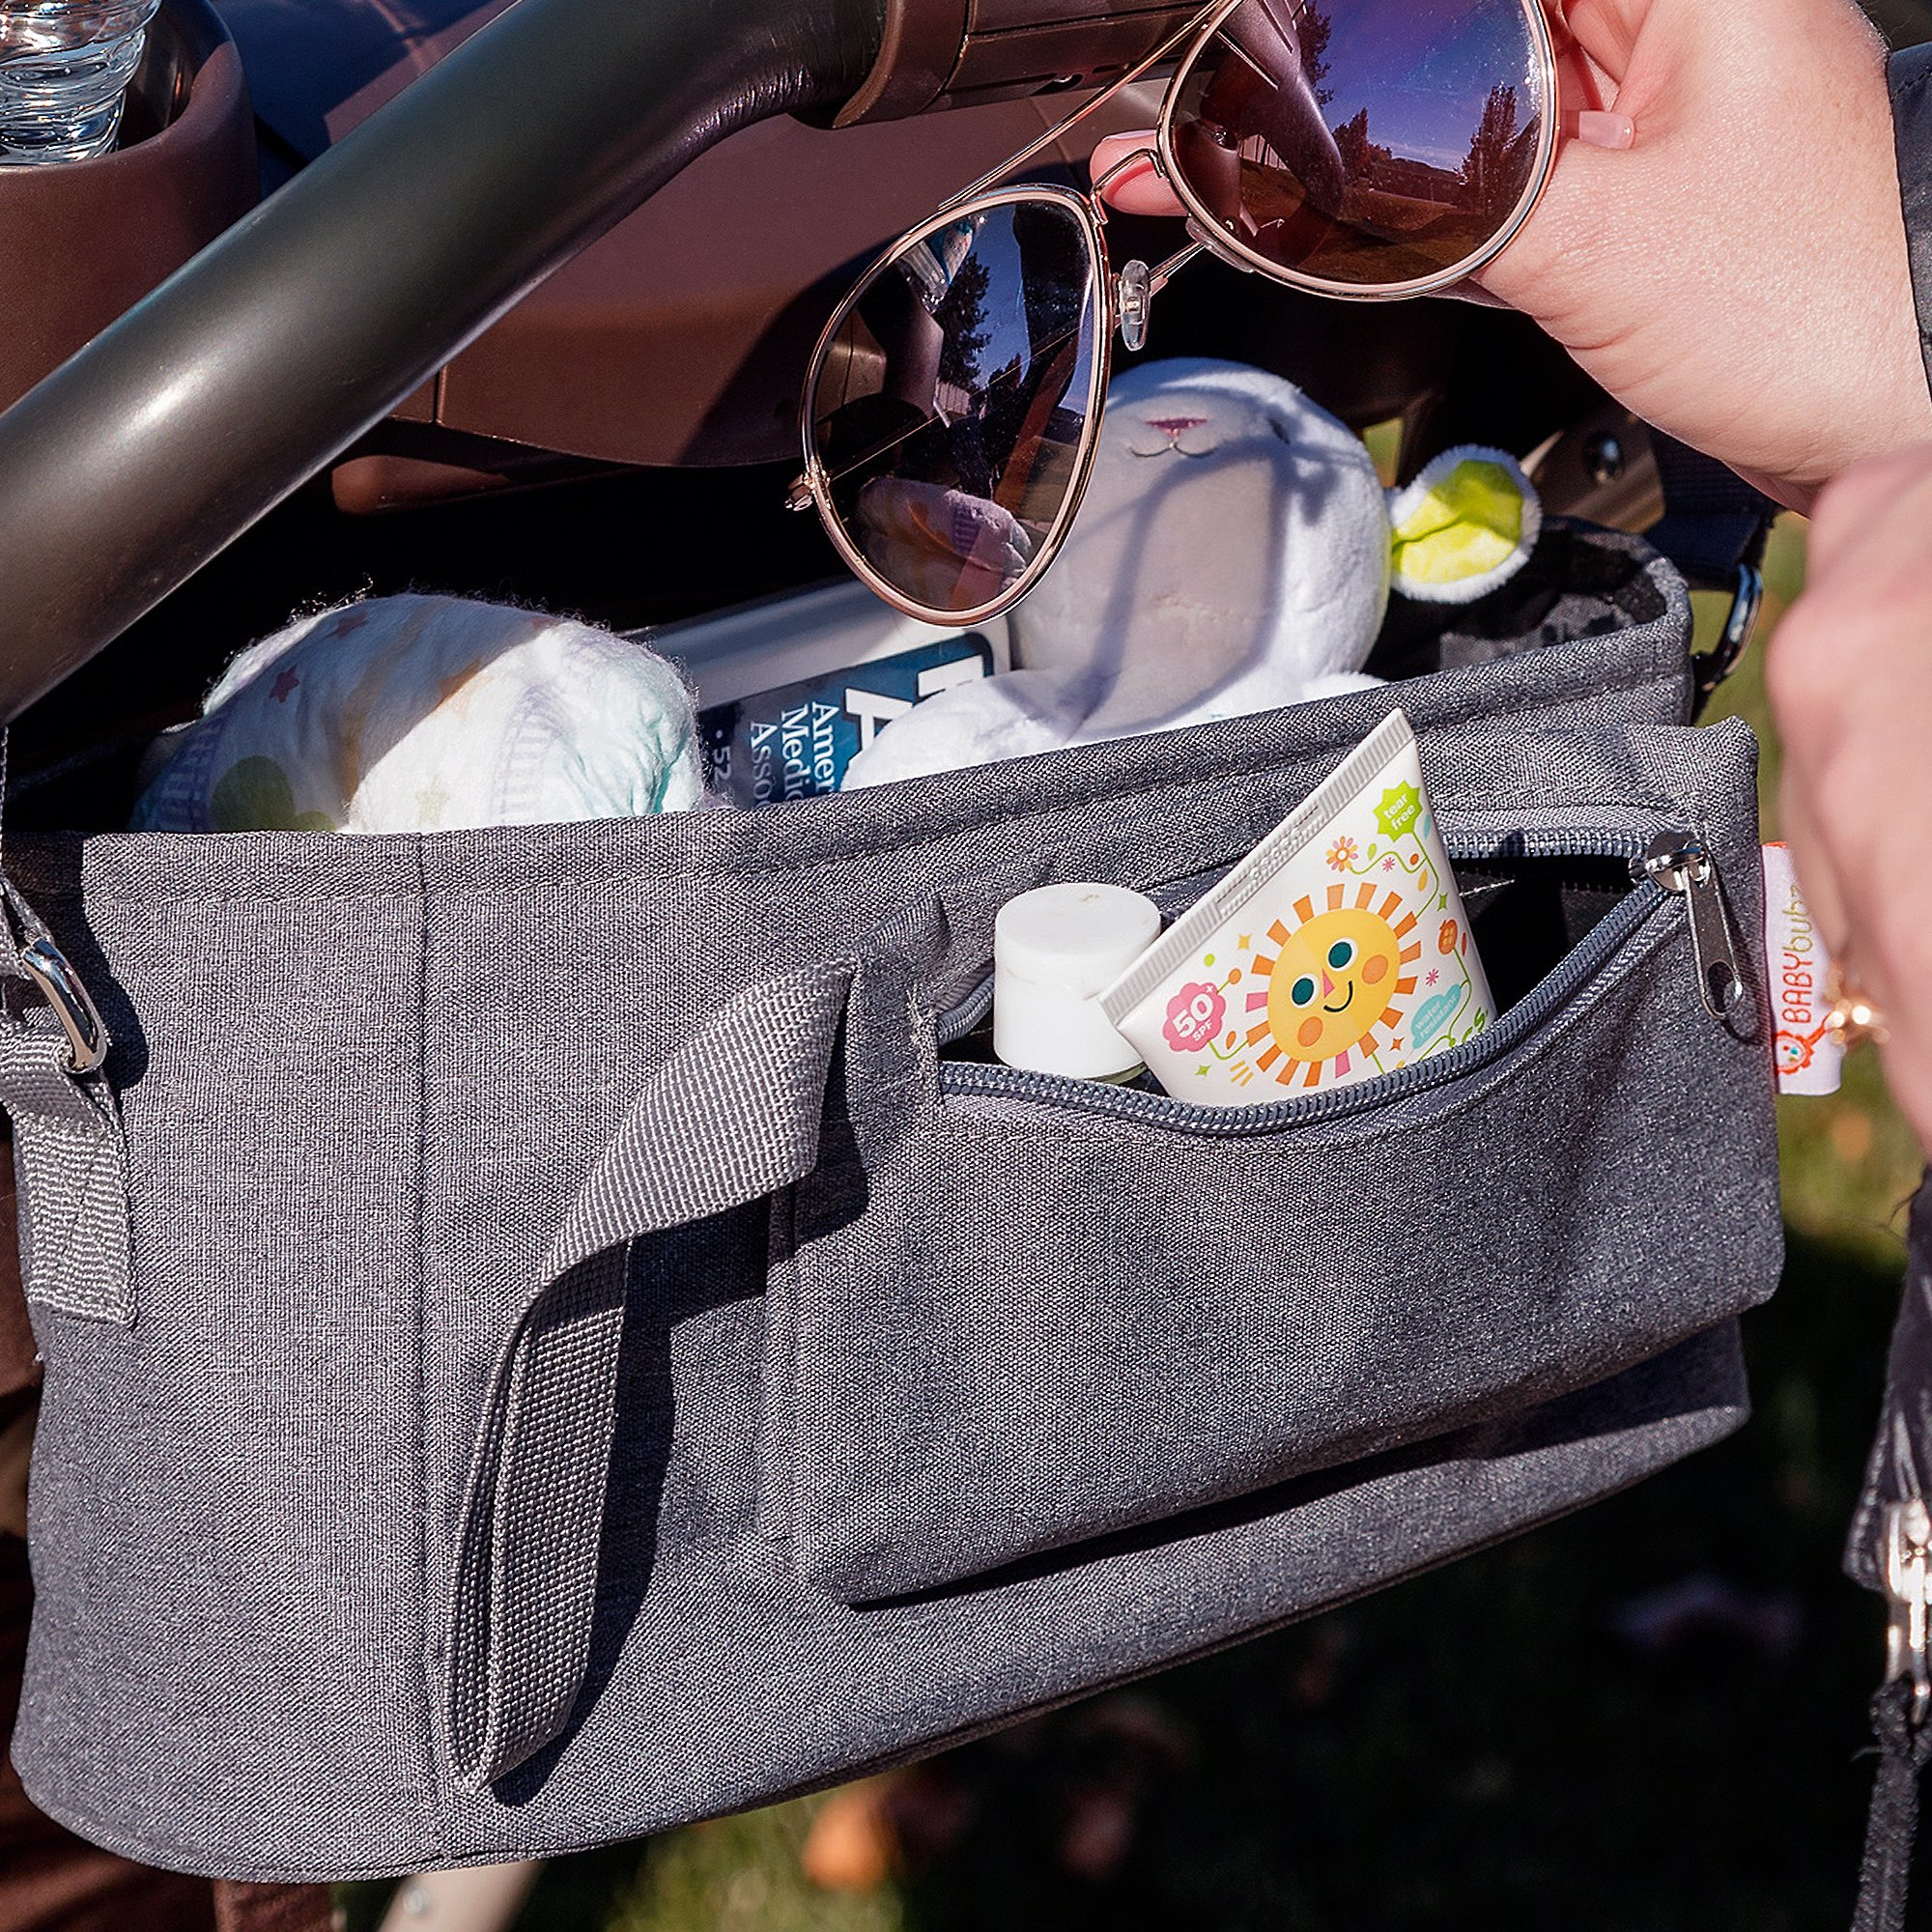 Baby Stroller Organizer by BabyBubz - Premium New Sleek Design - Durable Cup Holders - Universal Fit - tons of Storage for Phones, Keys, Diapers, Baby Toys, Snacks, Accessories - Best Shower Gift by BabyBubz (Image #9)